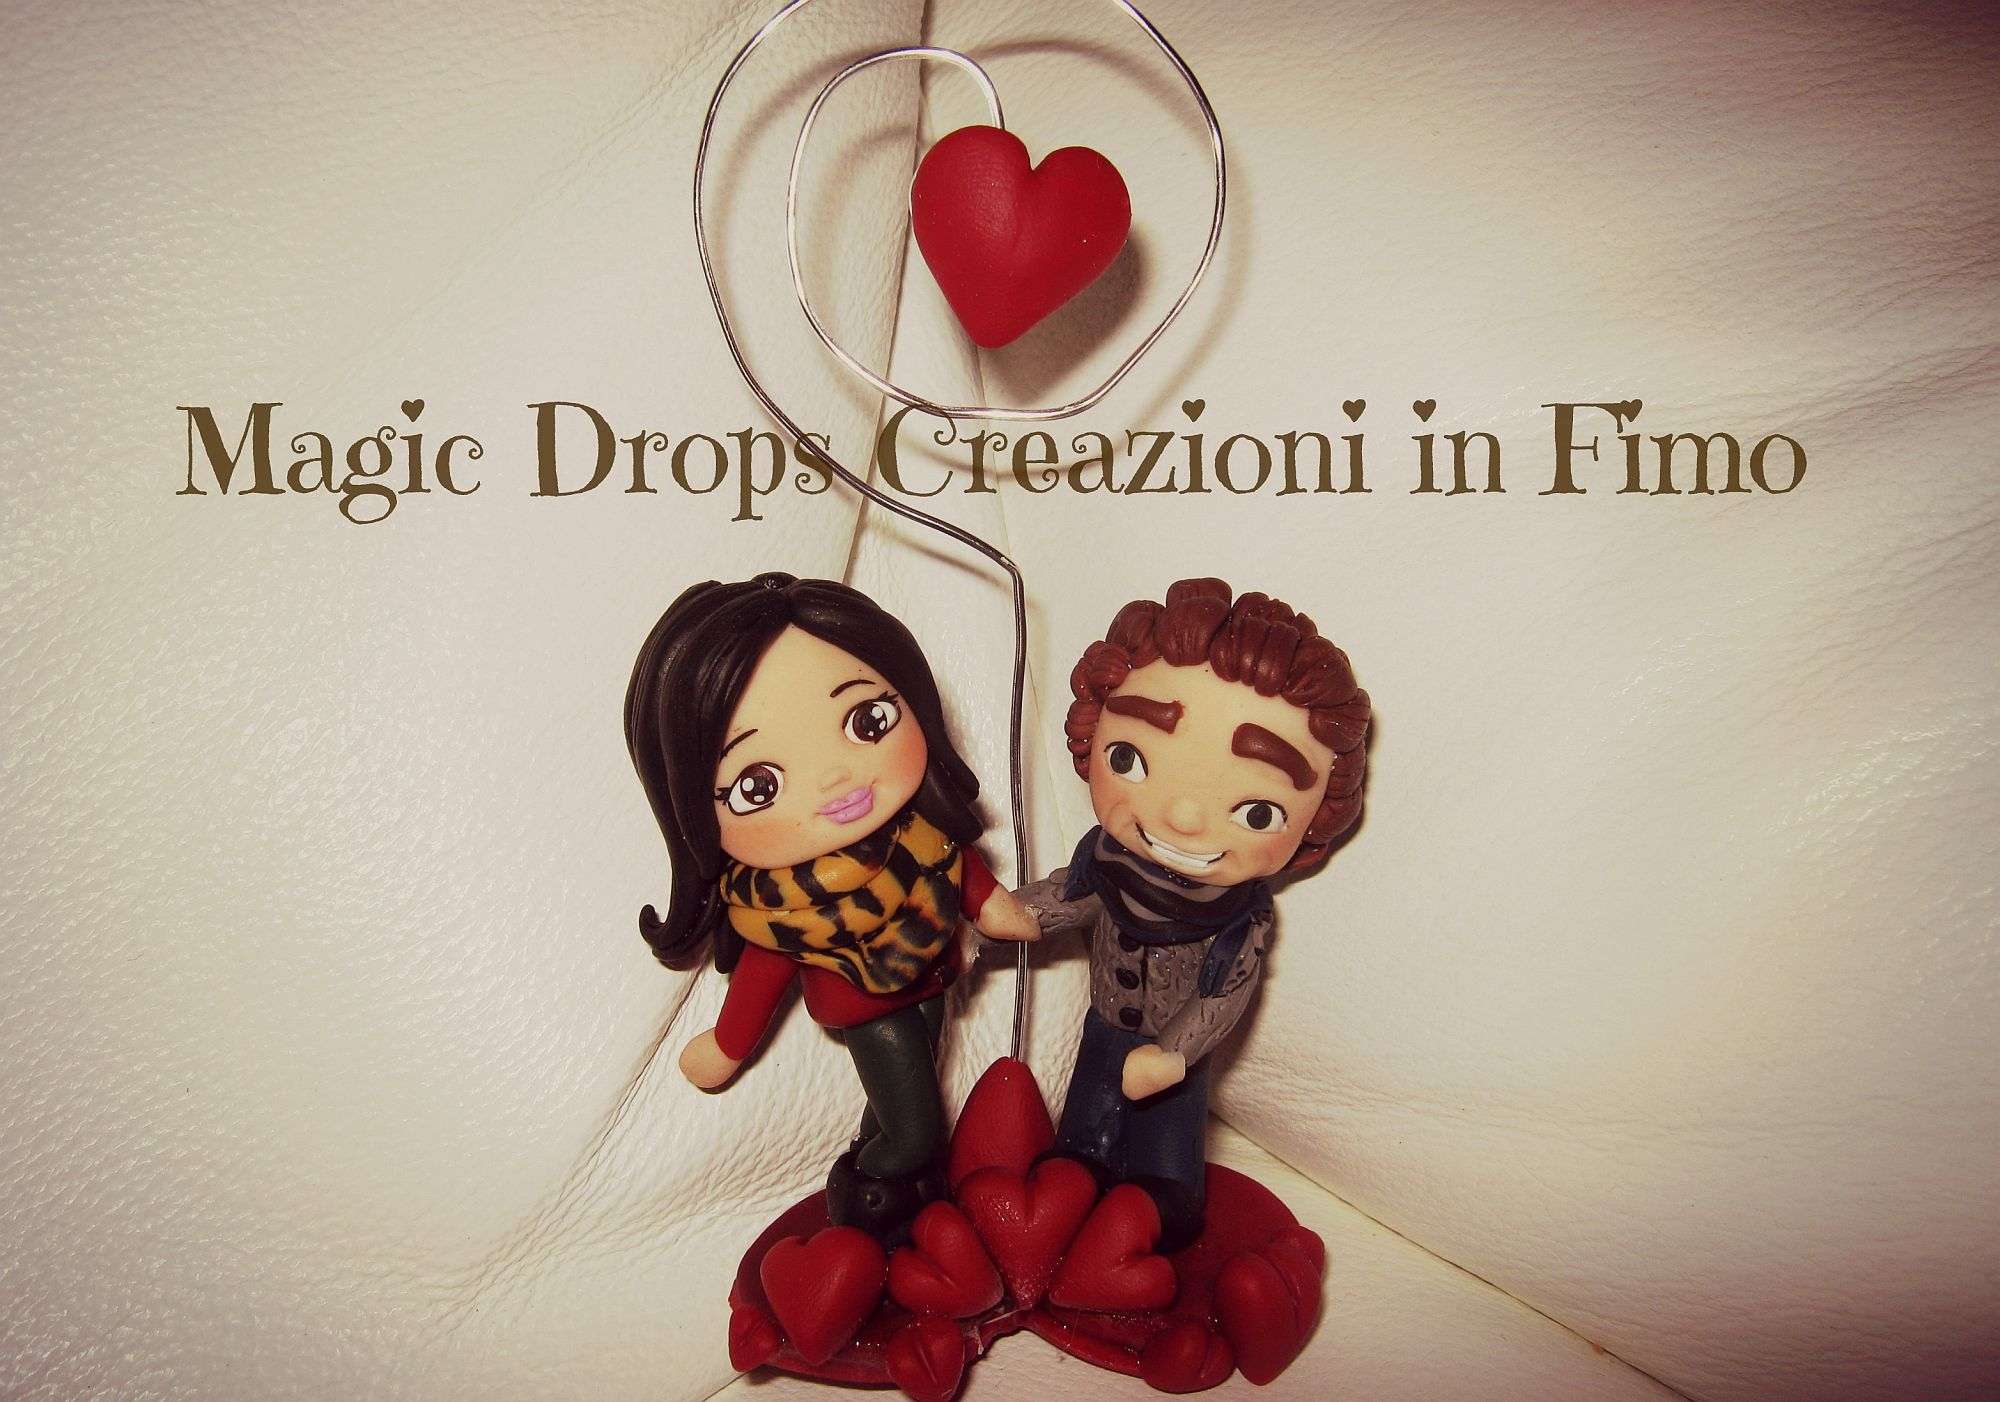 Magic Drops Creazioni in Fimo